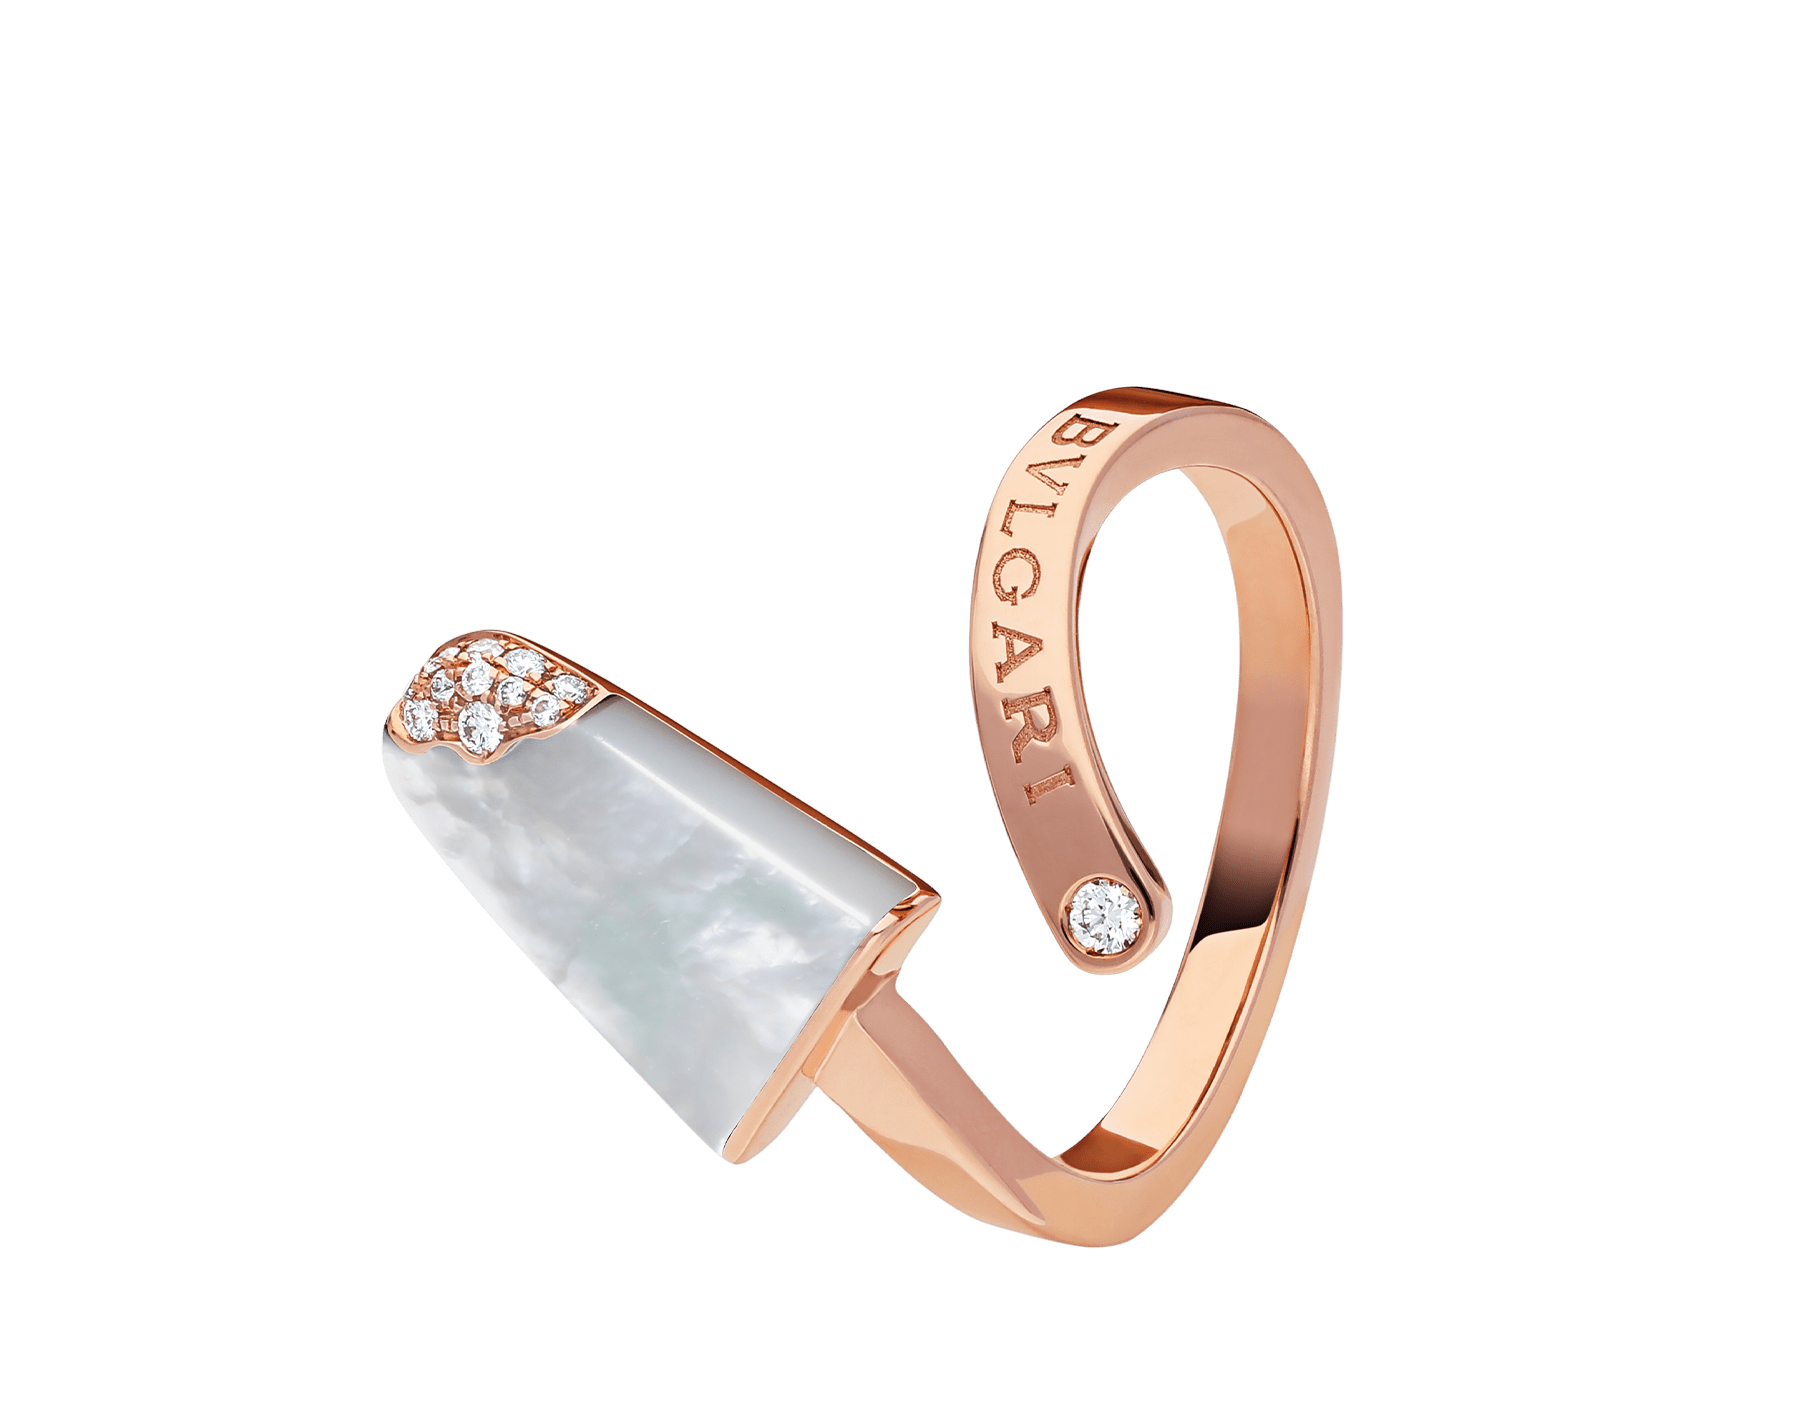 BVLGARI BVLGARI Gelati 18 kt rose gold ring set with mother-of-pearl and pavé diamonds AN858014 image 2